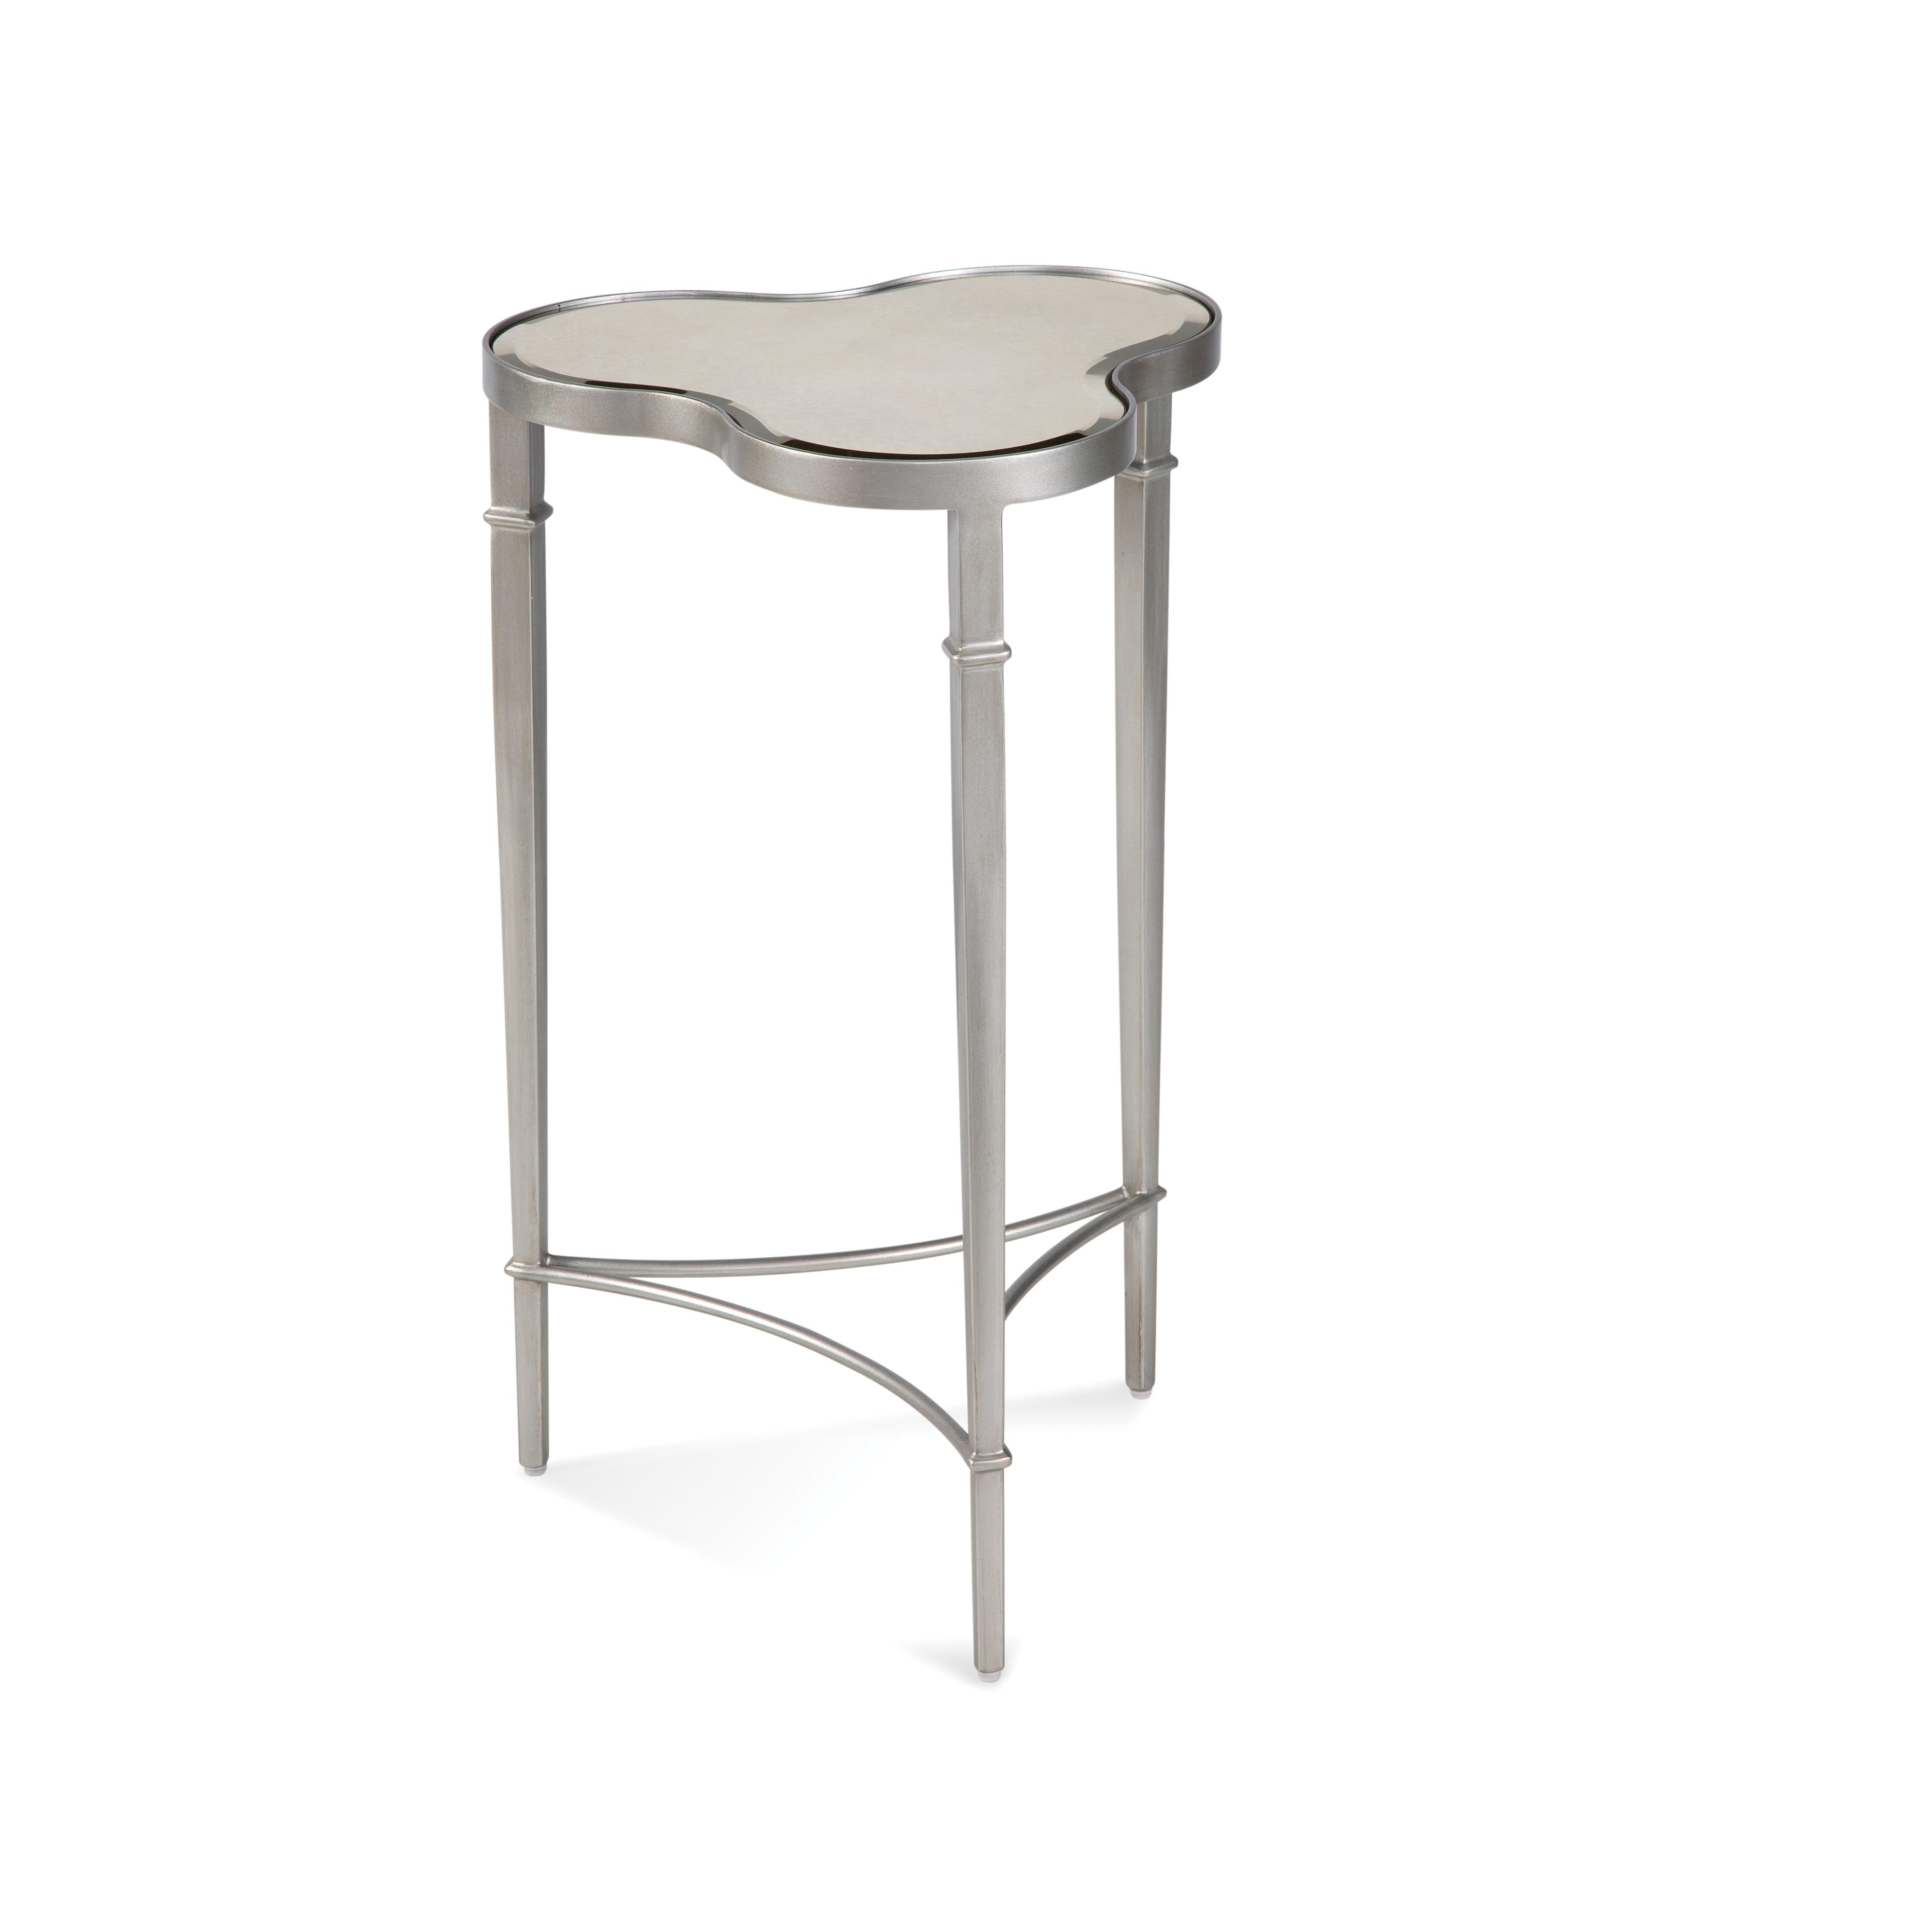 Thoroughly Modern Clover Scatter Table by Bassett Mirror at Alison Craig Home Furnishings